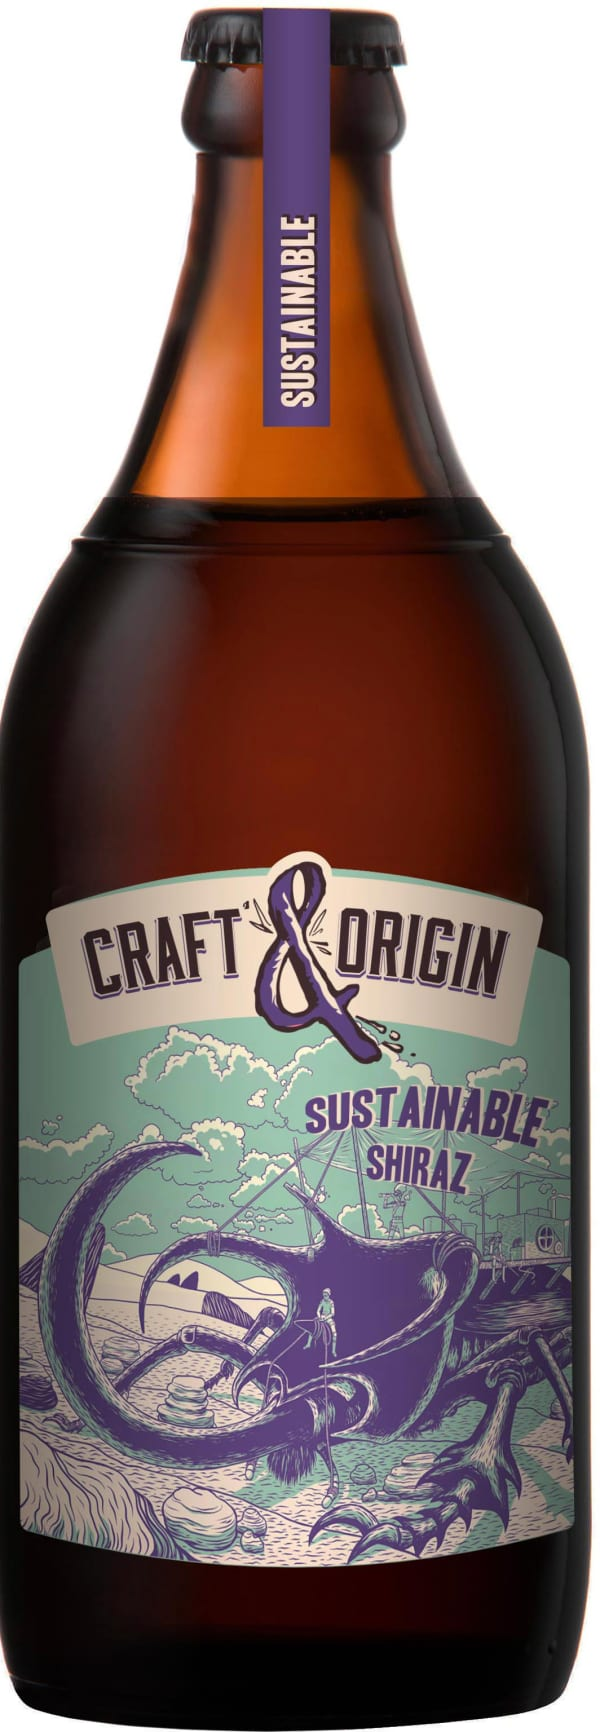 Craft & Origin Sustainable Shiraz 2018